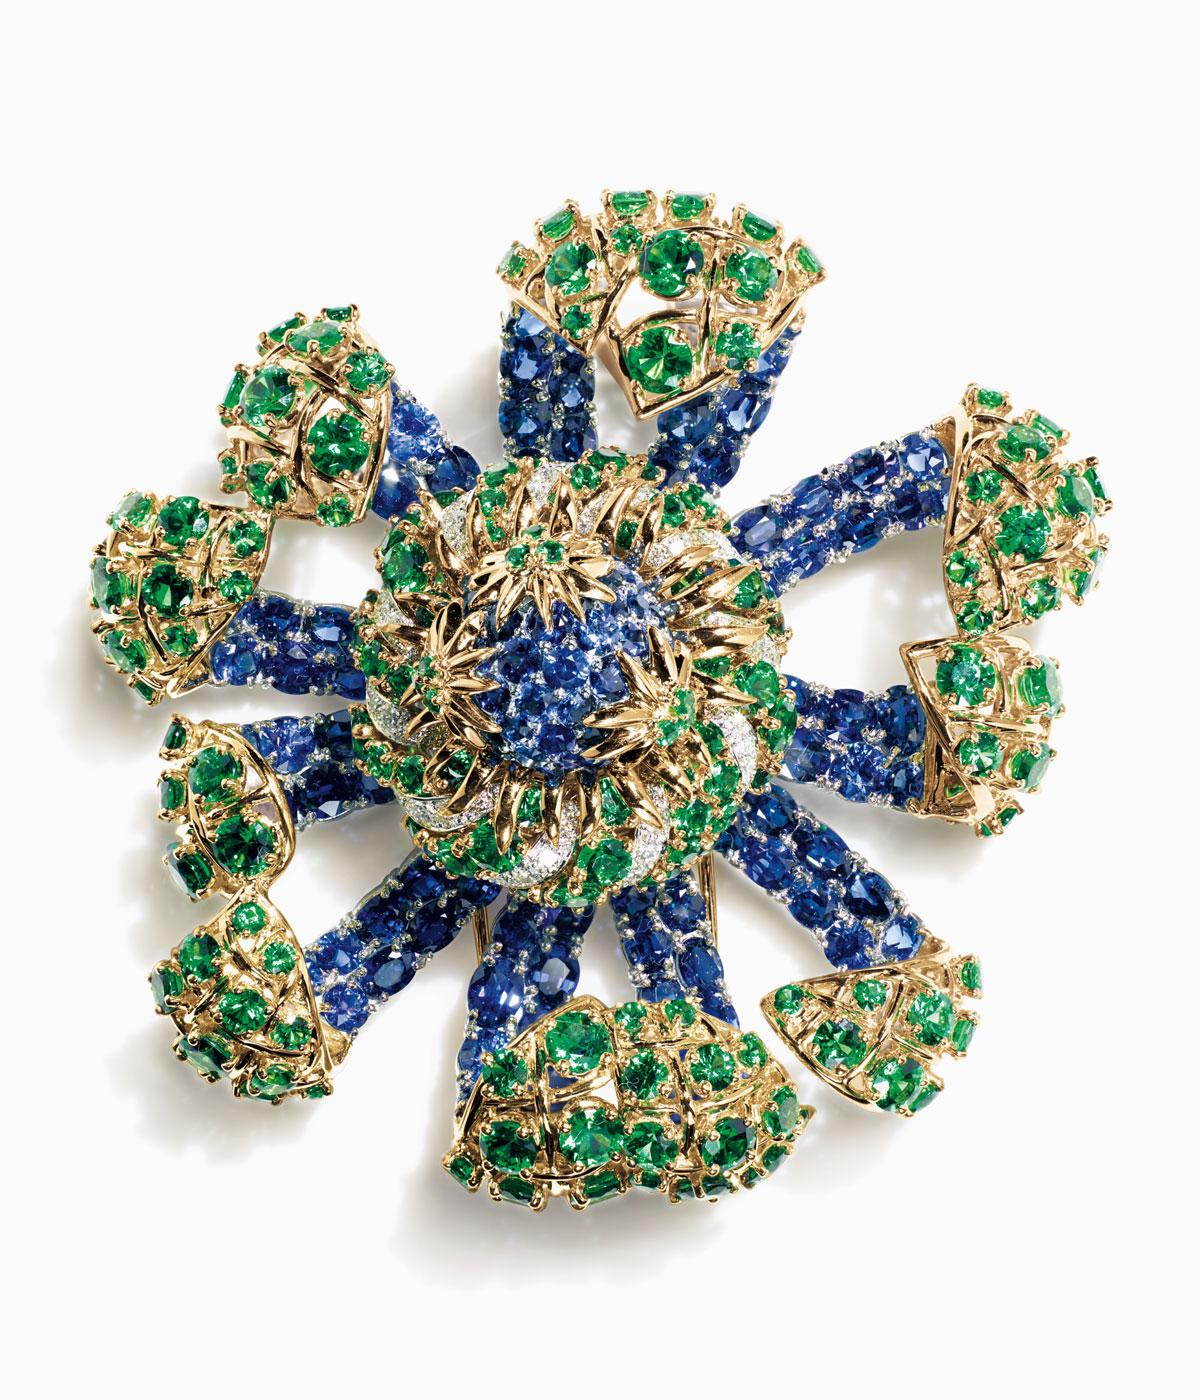 Tiffany & Co brightly coloured brooch, rethought for the modern age